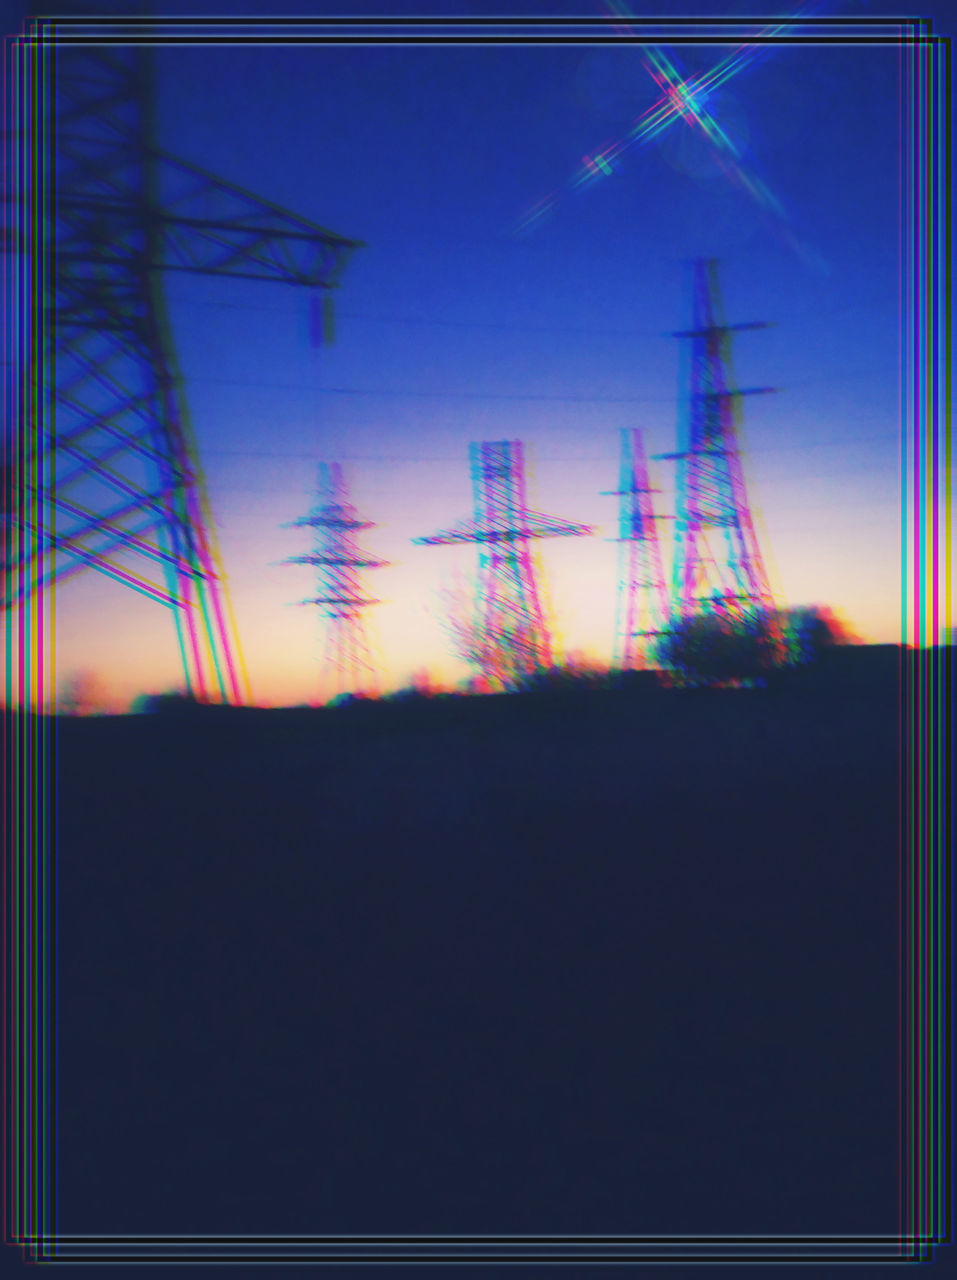 SILHOUETTE OF ELECTRICITY PYLON AT SUNSET